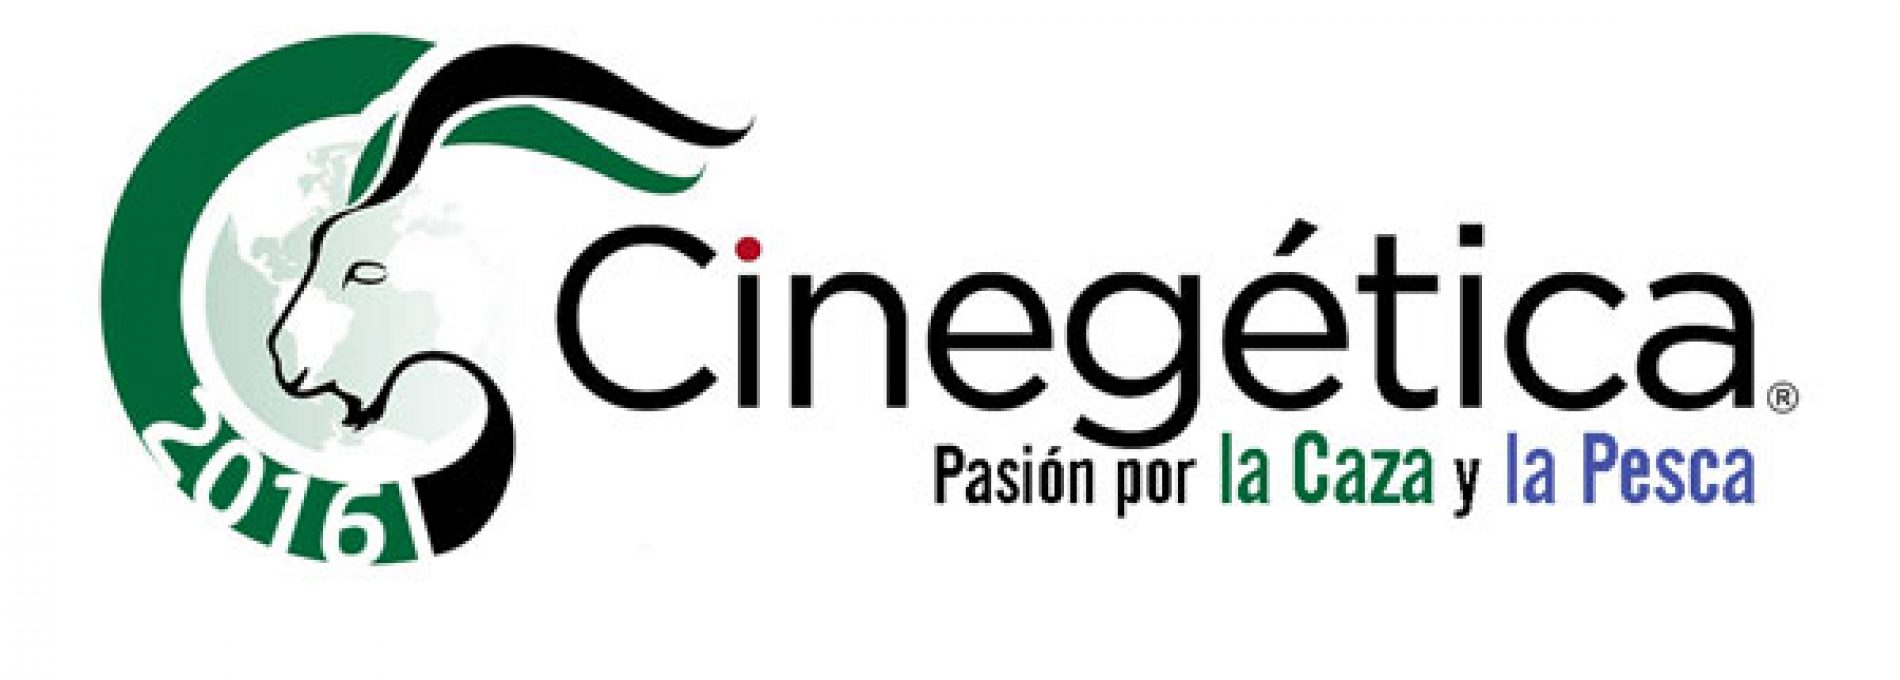 Cinegética 2016, escaparate internacional